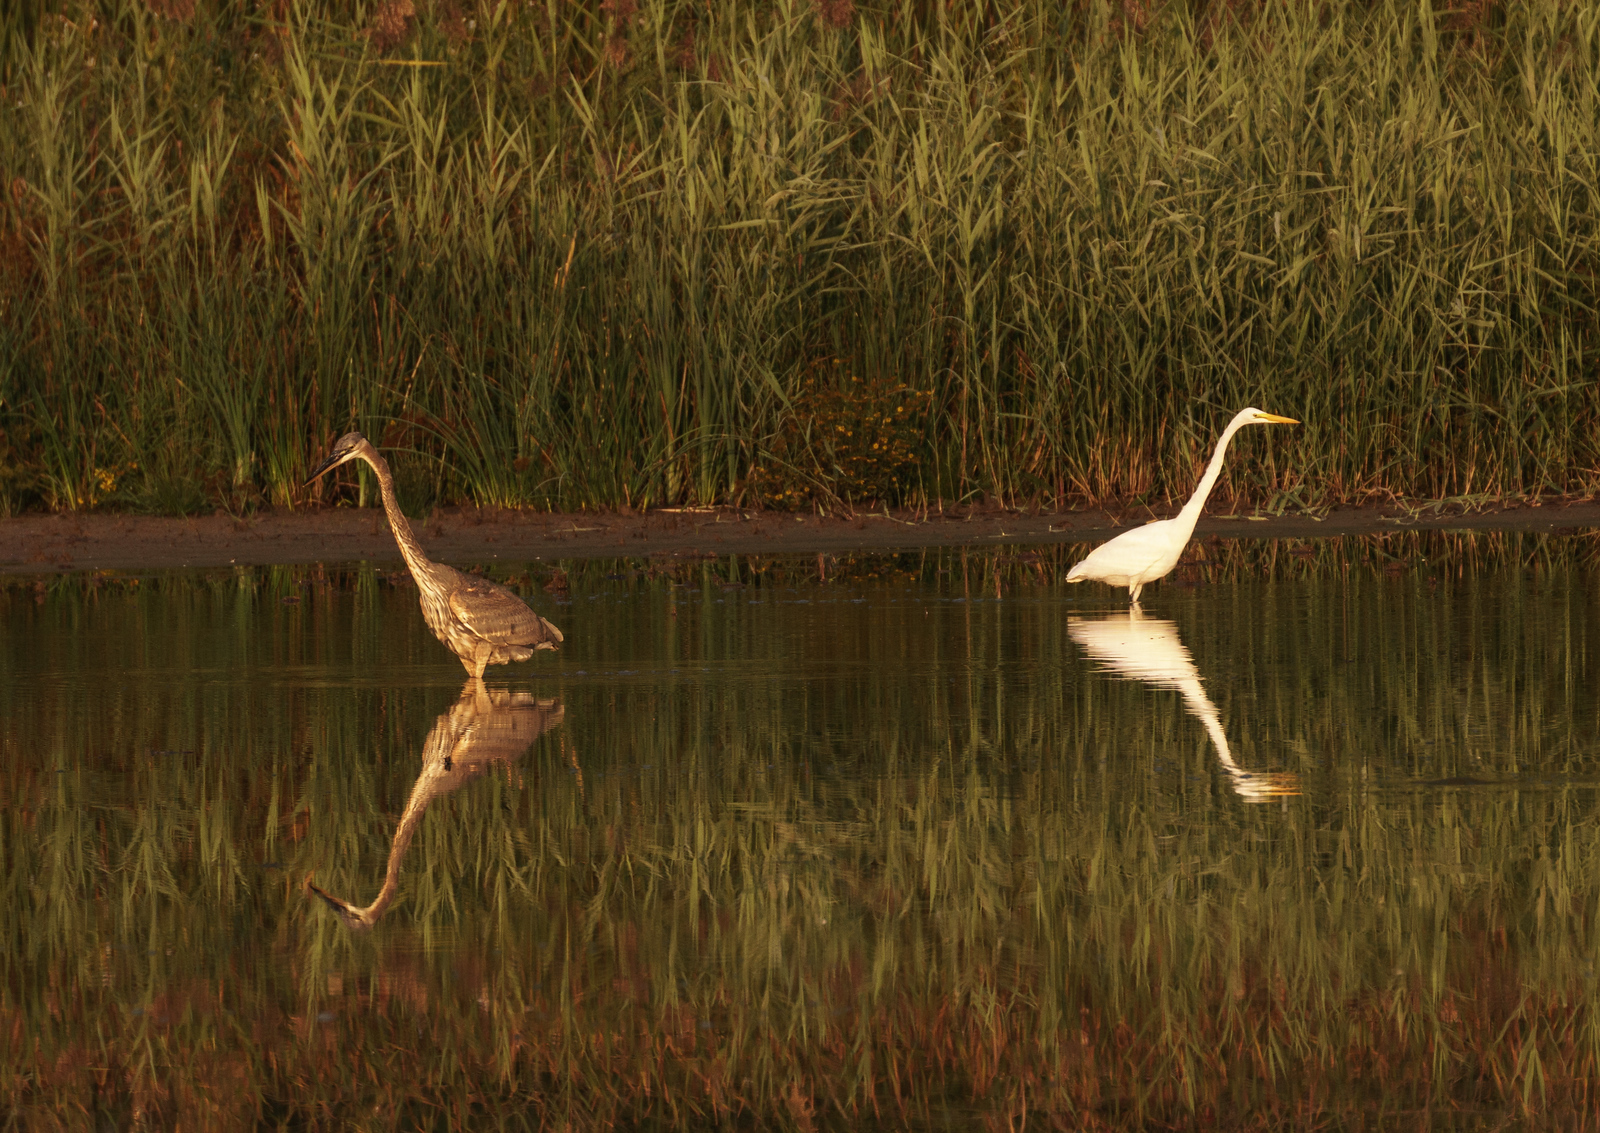 Heron and Egret - Fishing Together at Lillie Park